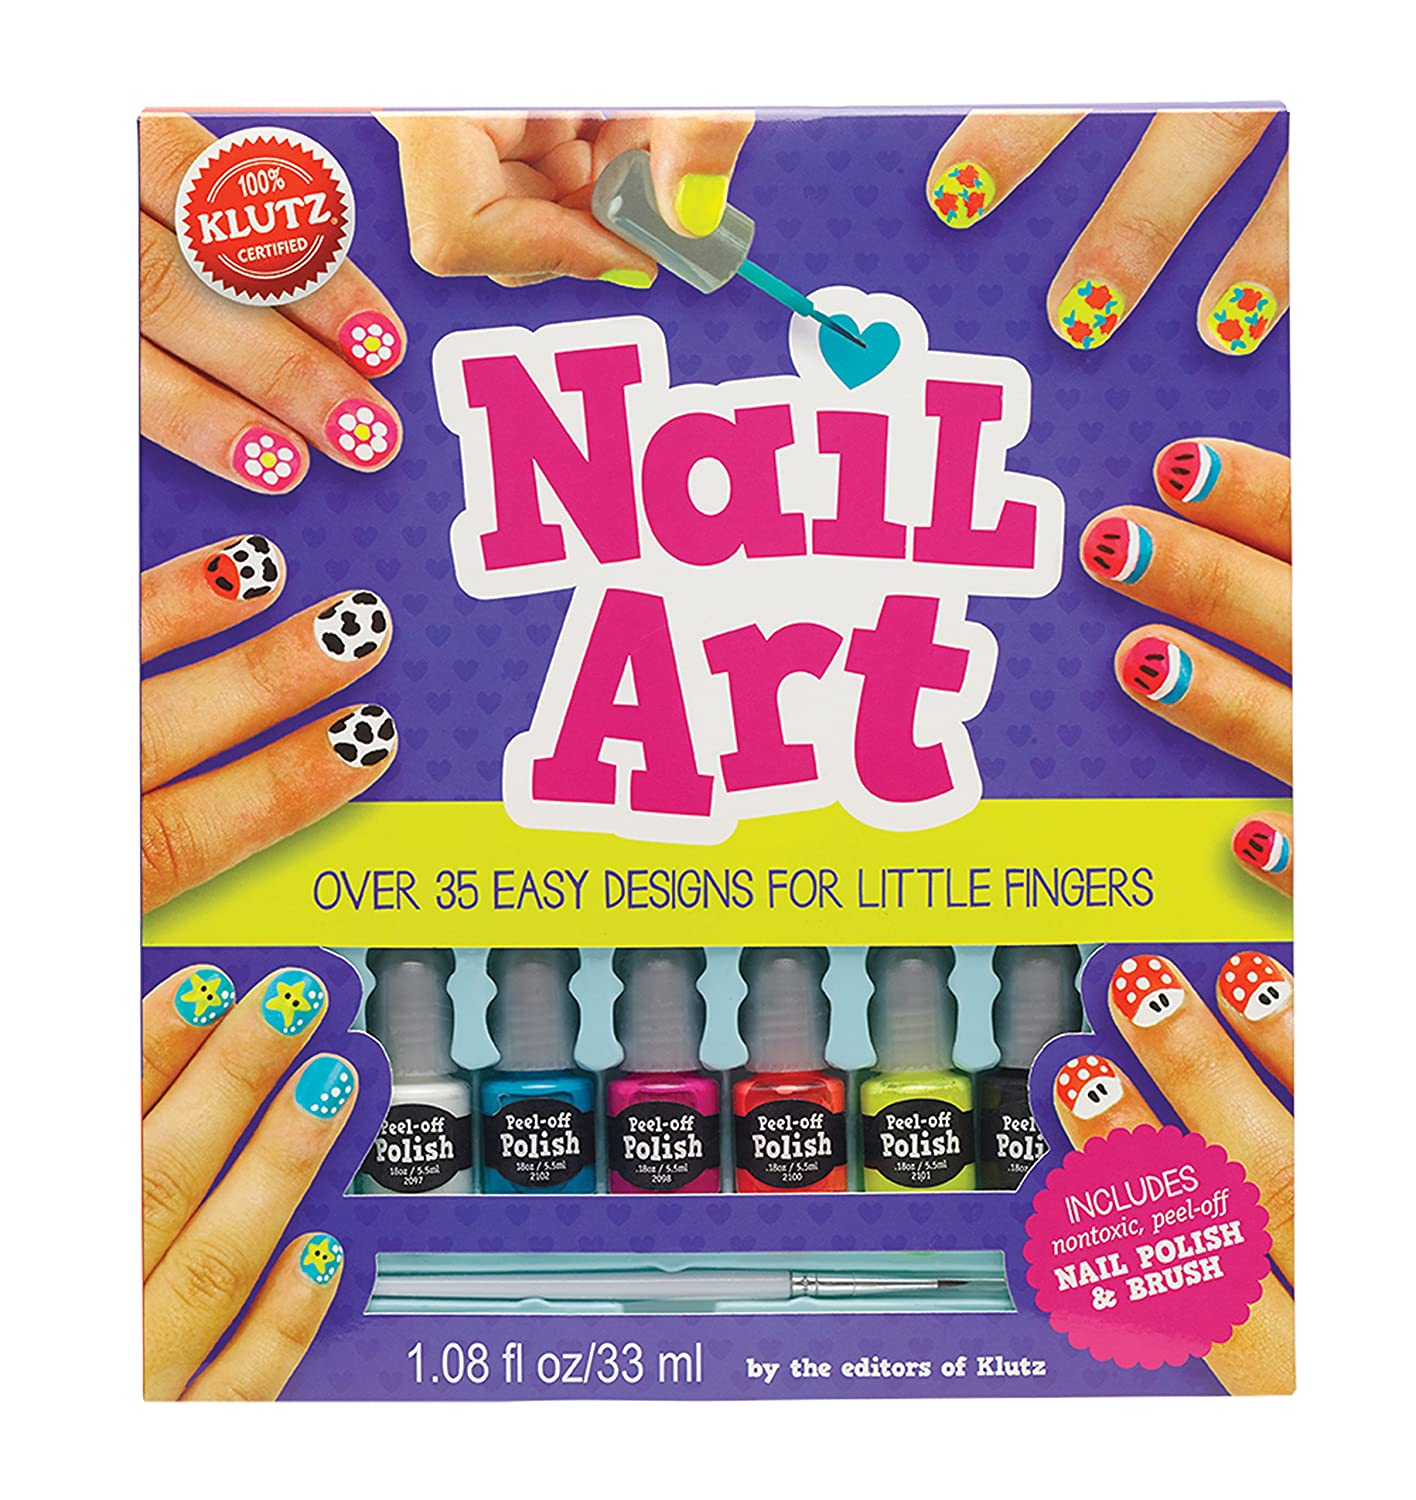 Amazon.com: Klutz Nail Art Craft Kit: The Editors of Klutz: Toys & Games